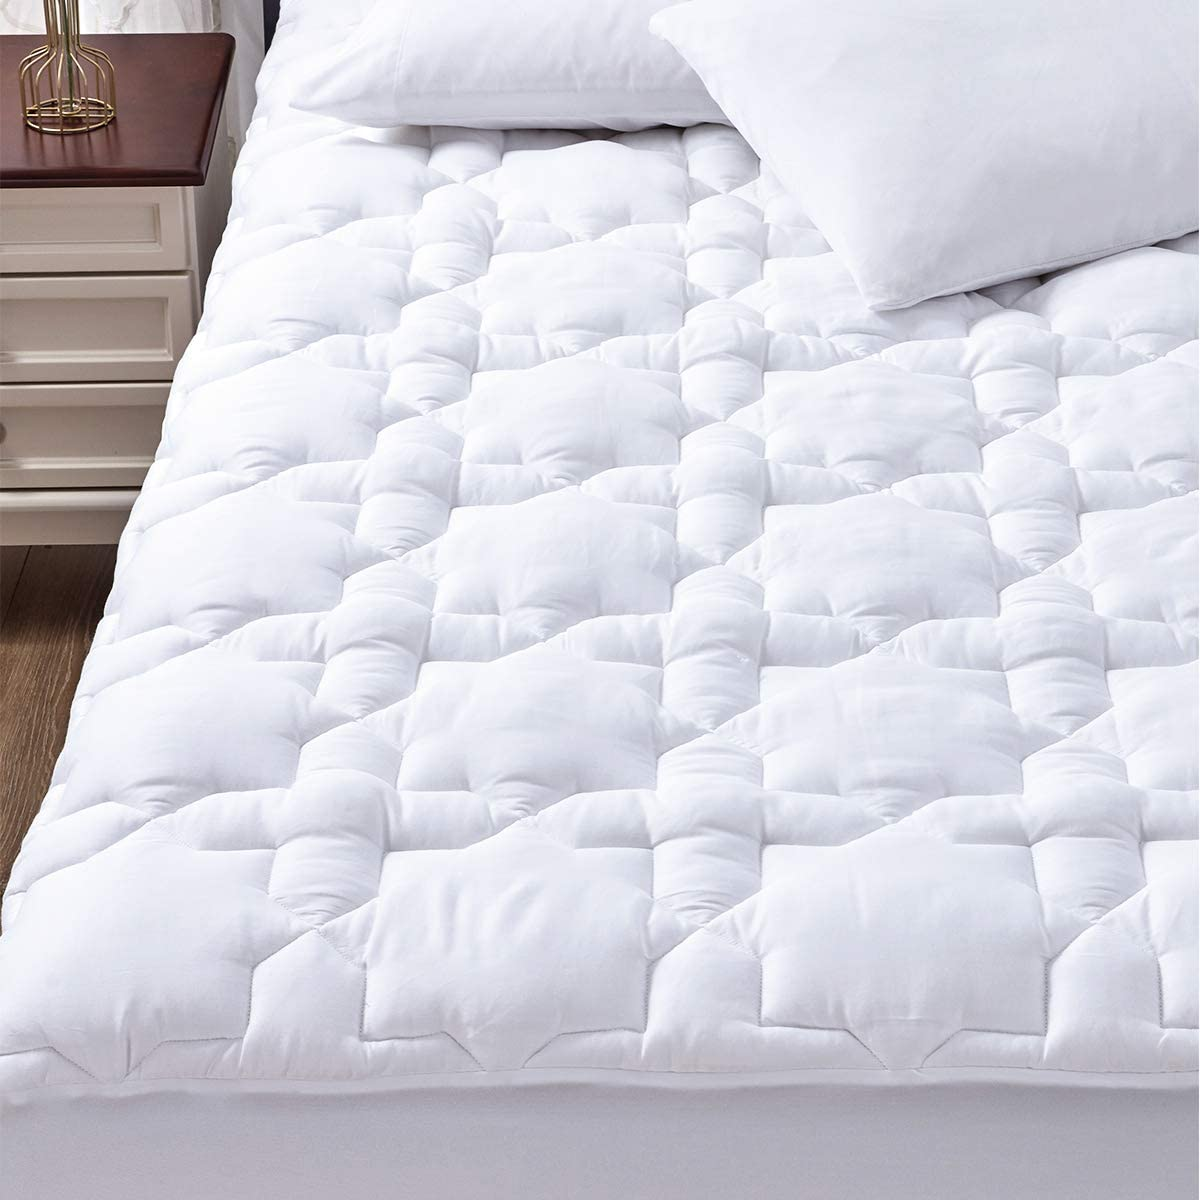 Amazon Com Cozylux Queen Mattress Pad Deep Pocket Non Slip Cotton Mattress Topper Breathable And Soft Quilted Fitted Mattress Cover Up To 18 Thick Pillowtop 450gsm Bed Mattress Pad White Kitchen Dining All cotton mattress pad no polyester